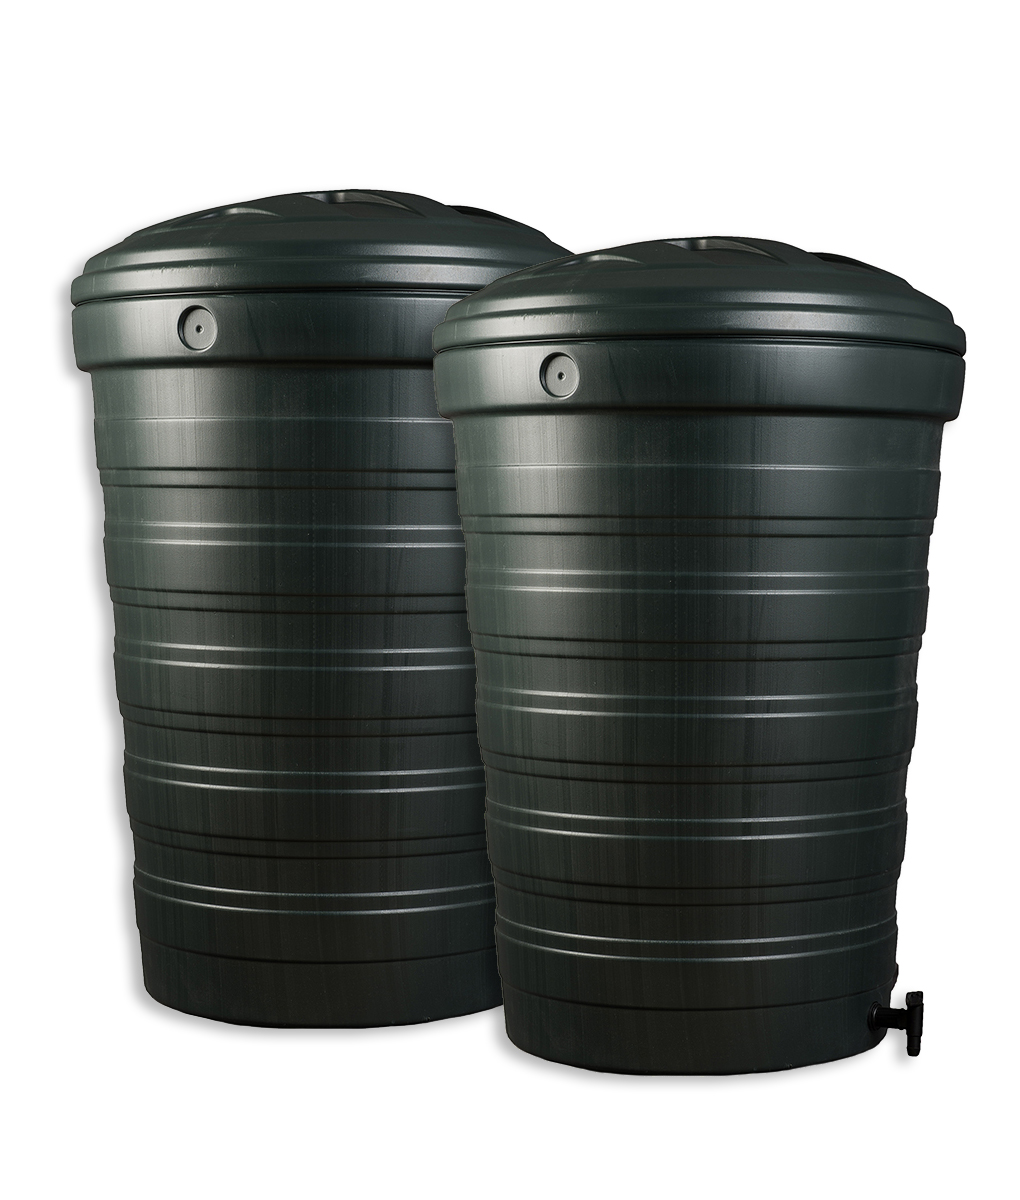 200 Litre Water Butt Set :: Buy One Get One Half Price